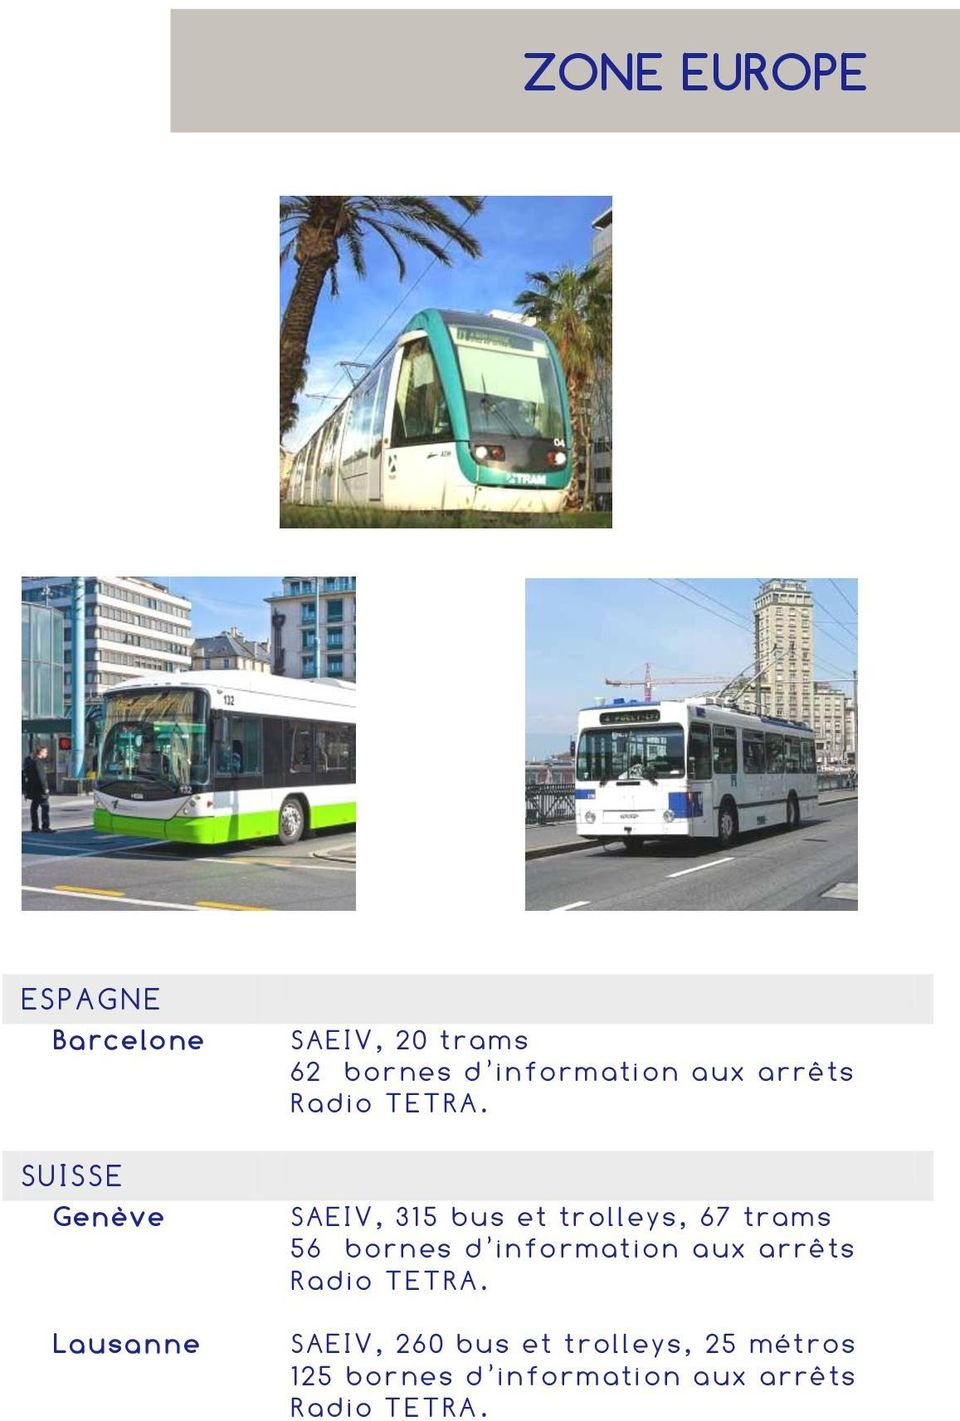 SAEIV, 315 bus et trolleys, 67 trams 56 bo rnes d in fo rmat ion a ux arr êts